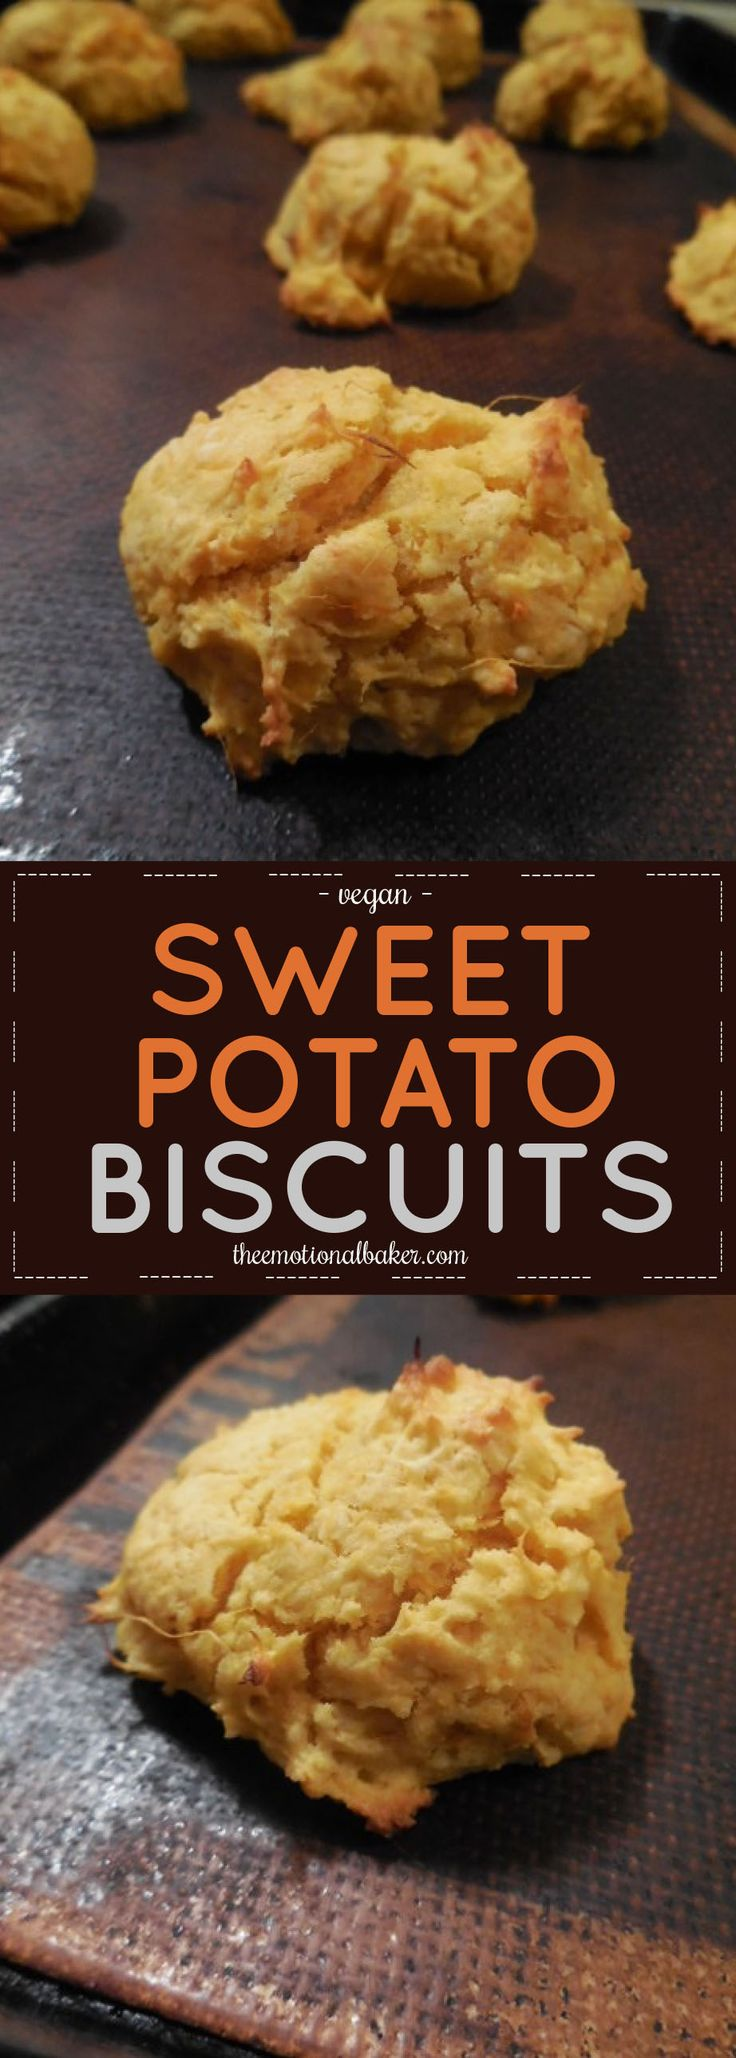 Easy, vegan sweet potato biscuit recipe perfect for pairing with soup ...